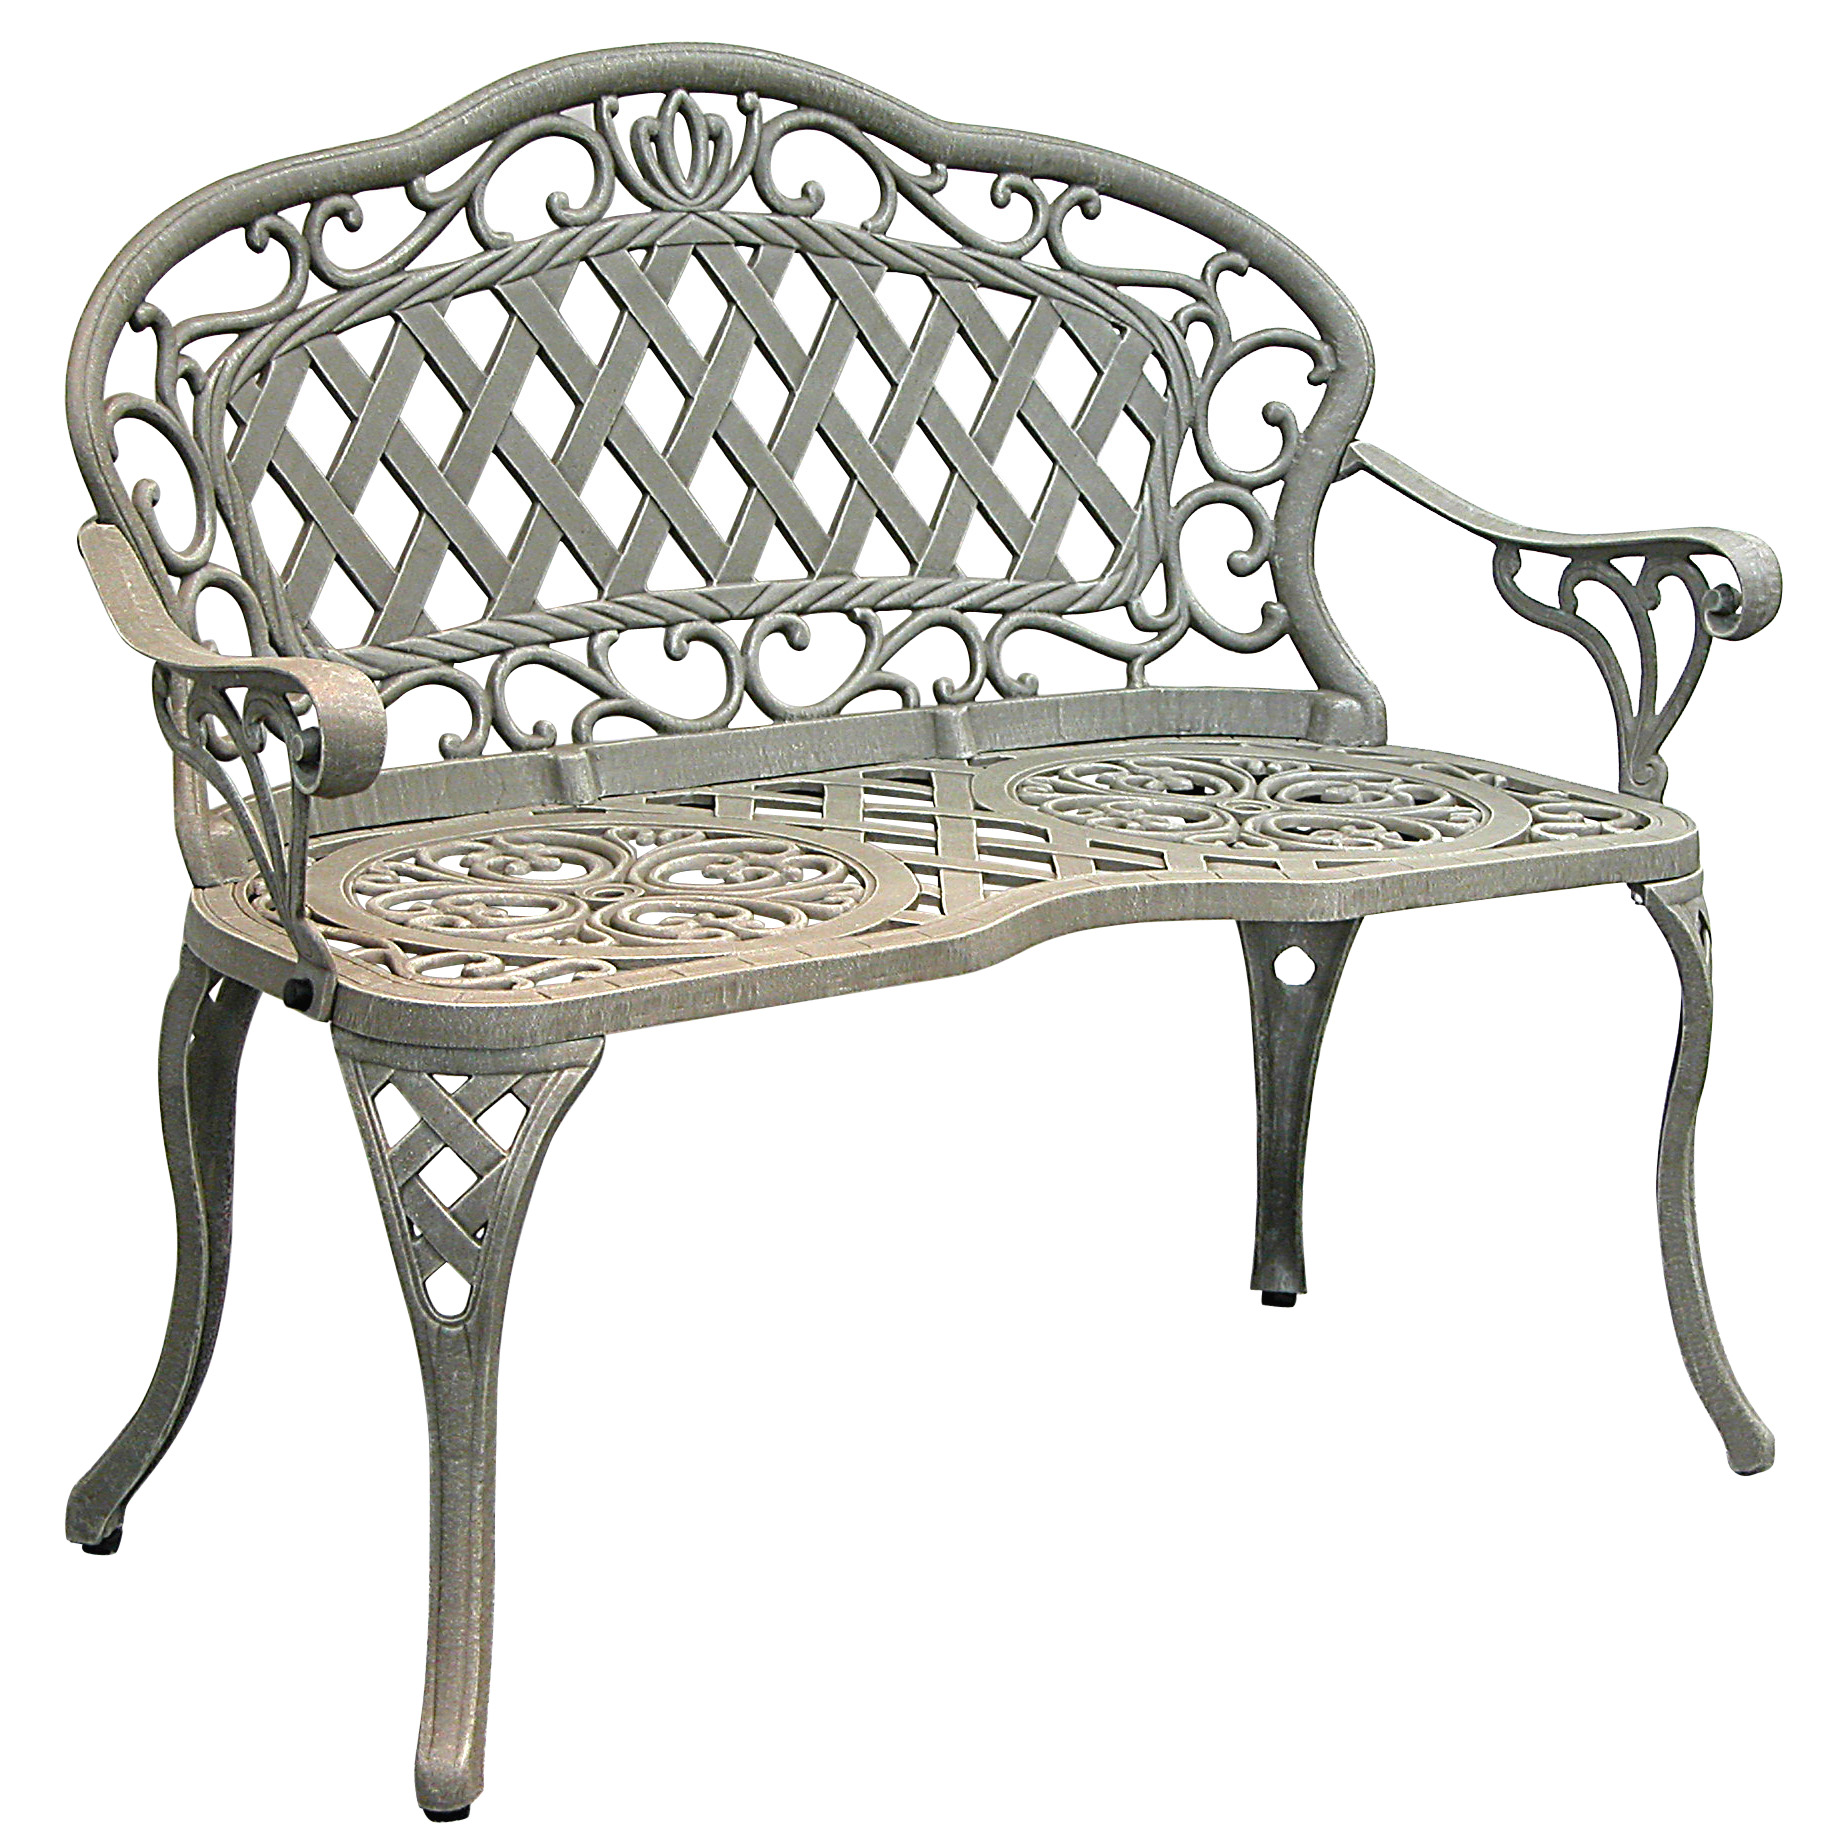 Patio furniture bench cast aluminum iron loveseat regis Wrought iron outdoor bench